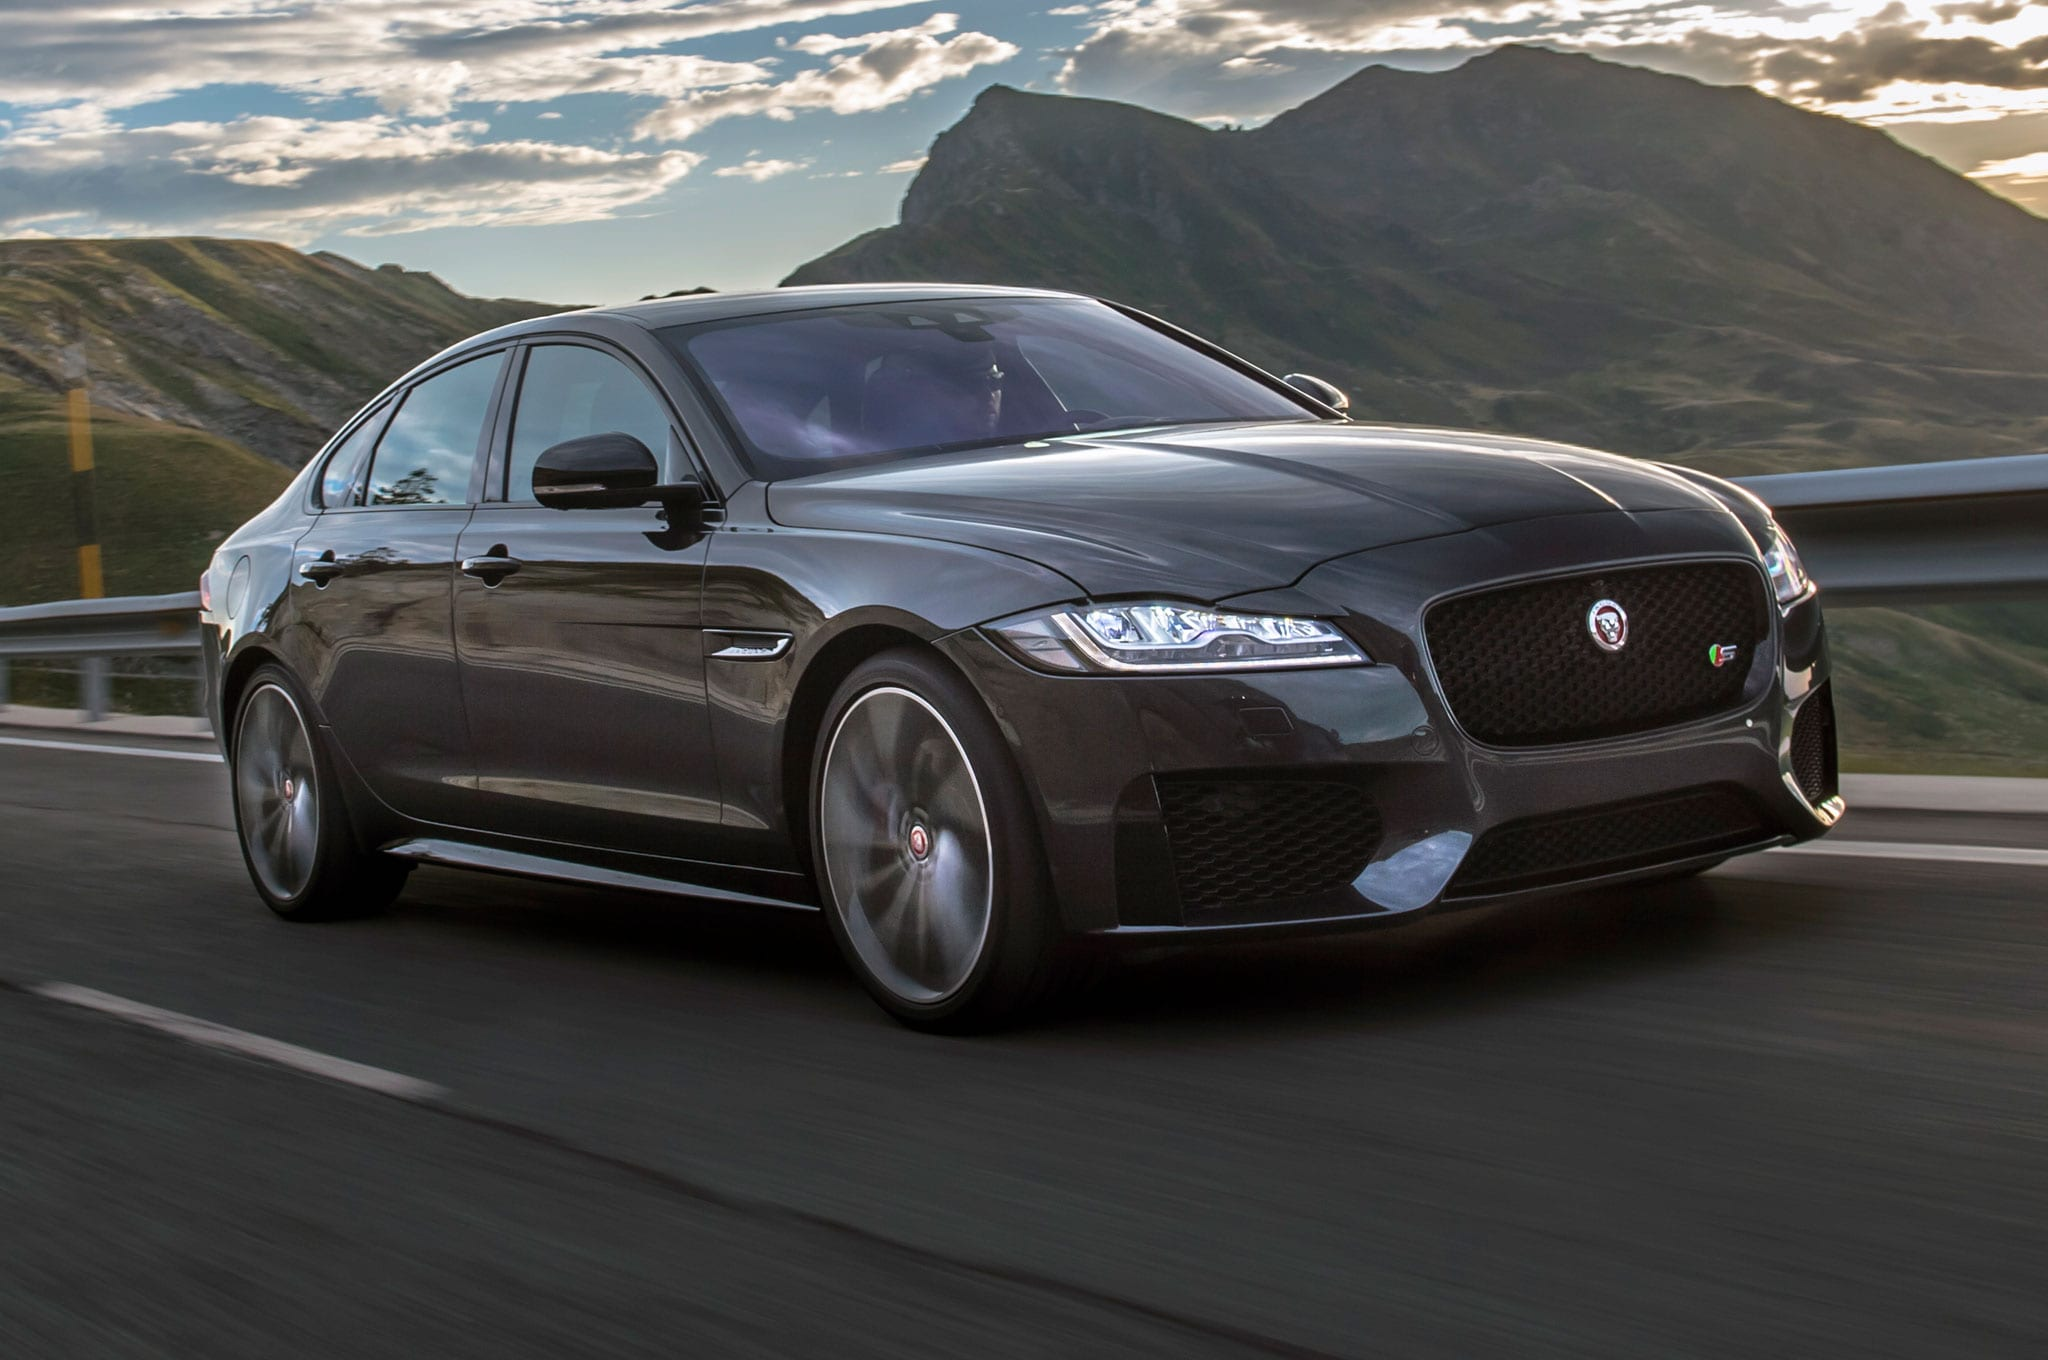 Jaguar XF 2 Wallpapers hd